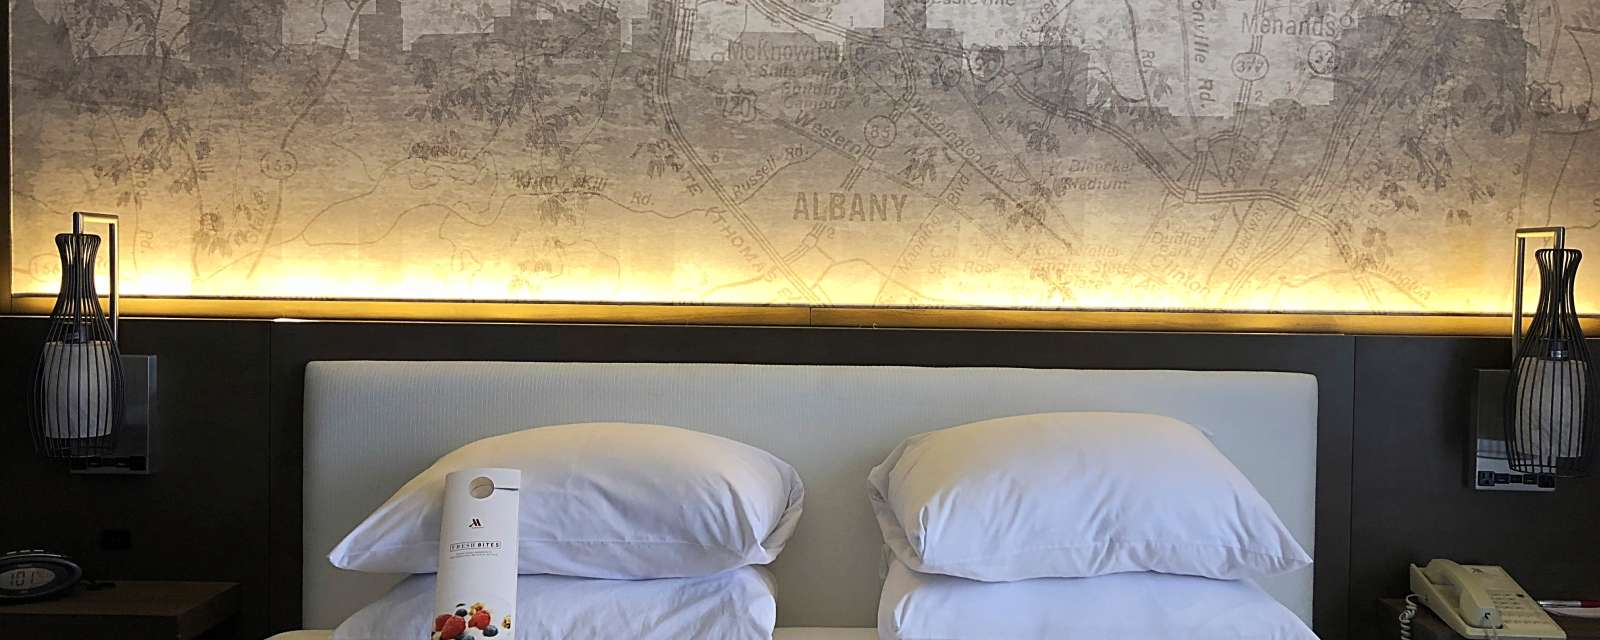 Albany Marriott Hotel rooms